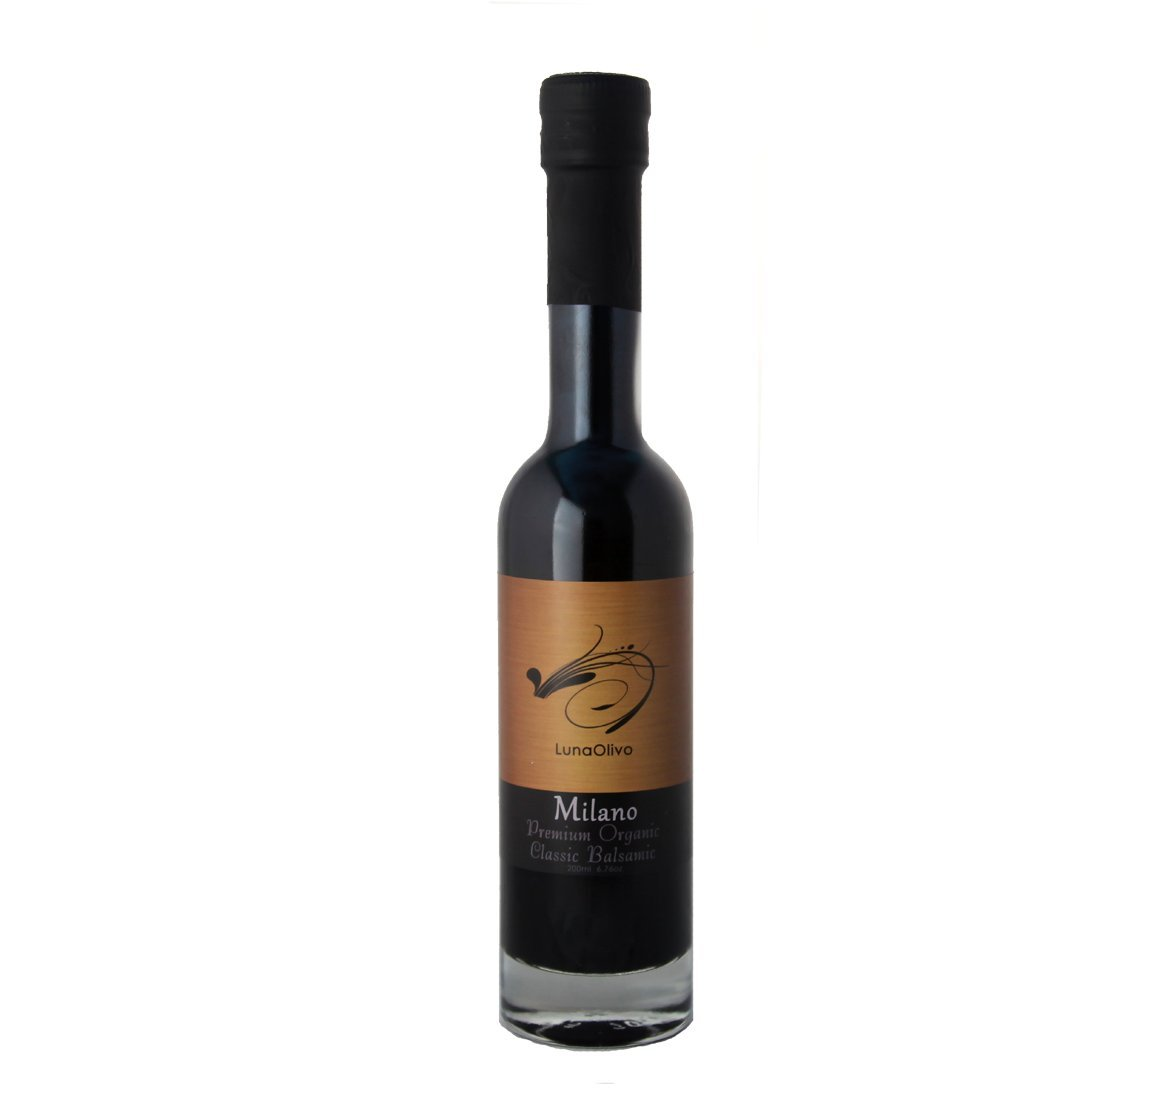 Balsamic Vinegar For Salad Dressing, Bruschetta, Vinaigrette, Reduction, Glaze, Gift Sets, Drizzle, Or Fish And Chicken Marinade. An Organic Artisan Crafted Milano Balsamic Of Modena.